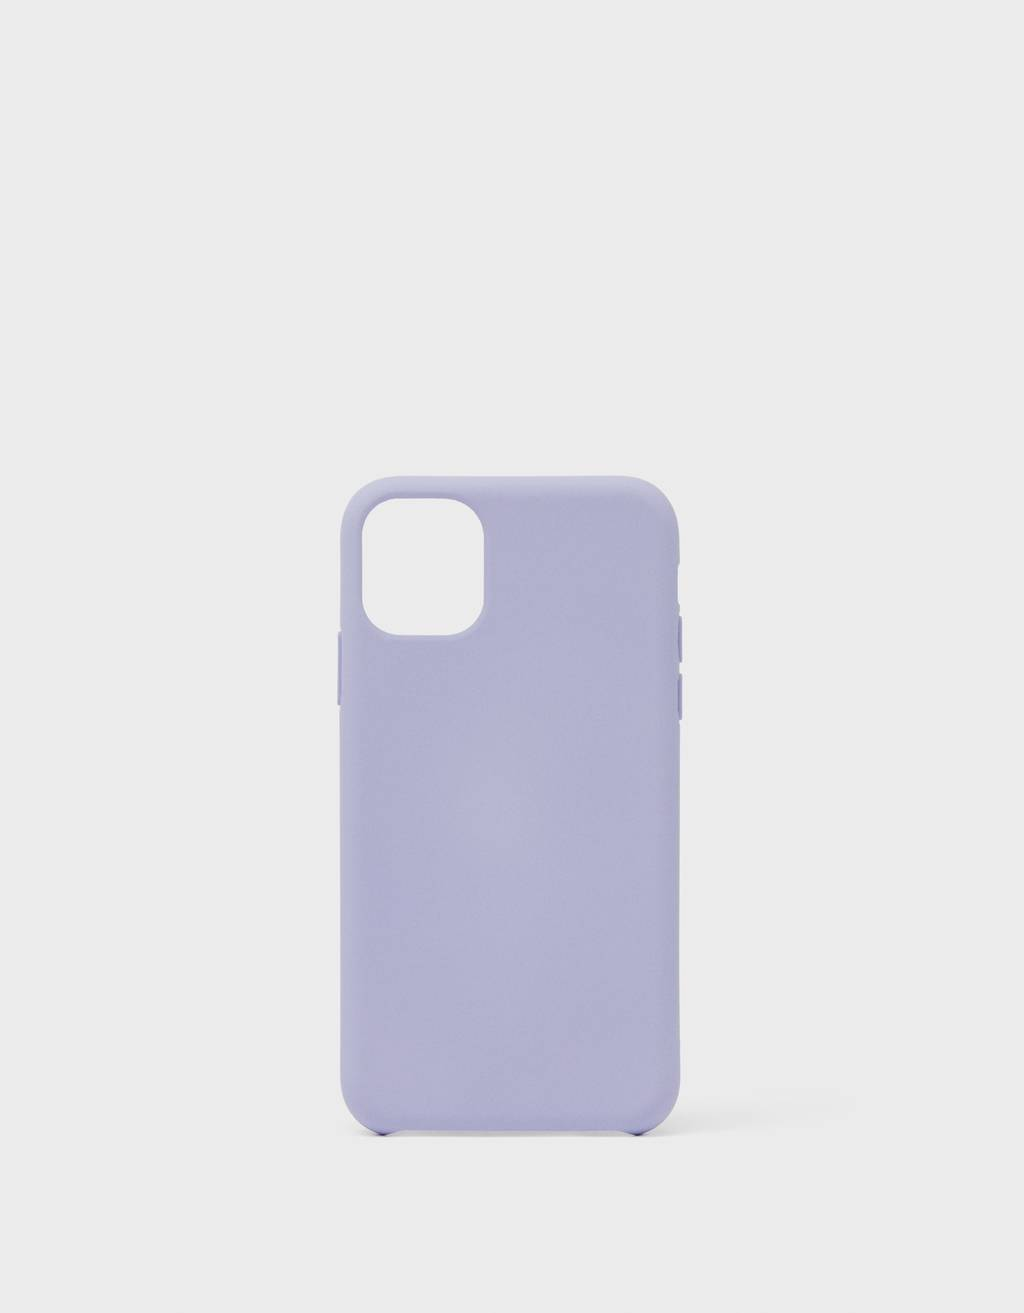 Monochrome iPhone 11 Pro case